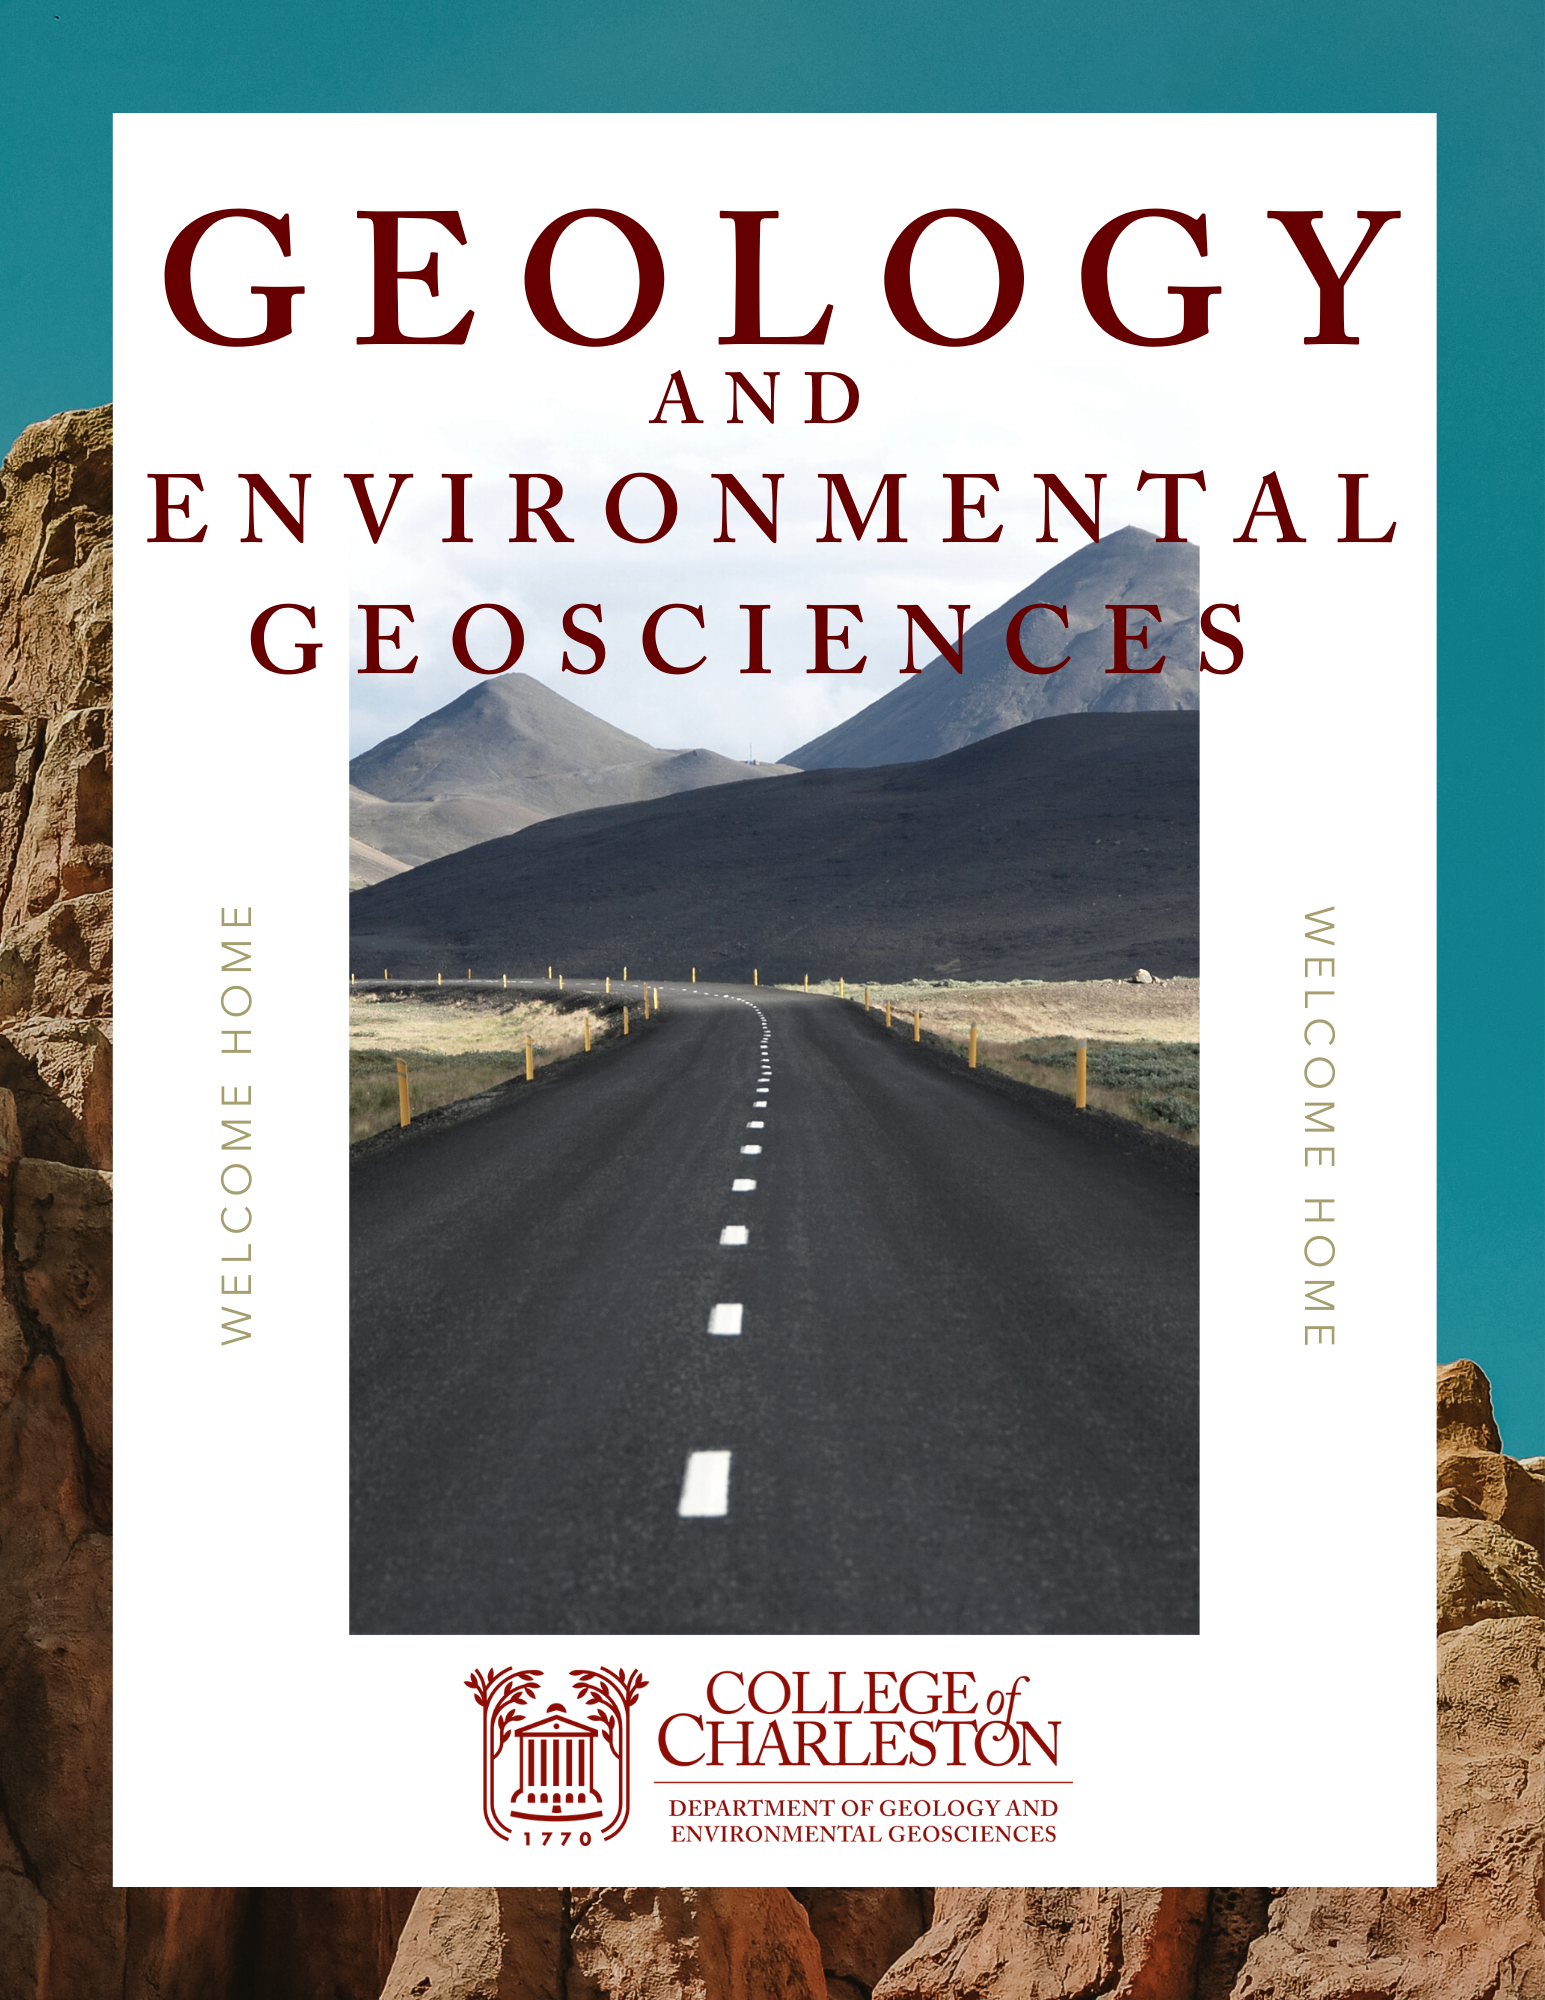 cofc-geology-virtual-information-booklet-cover.png